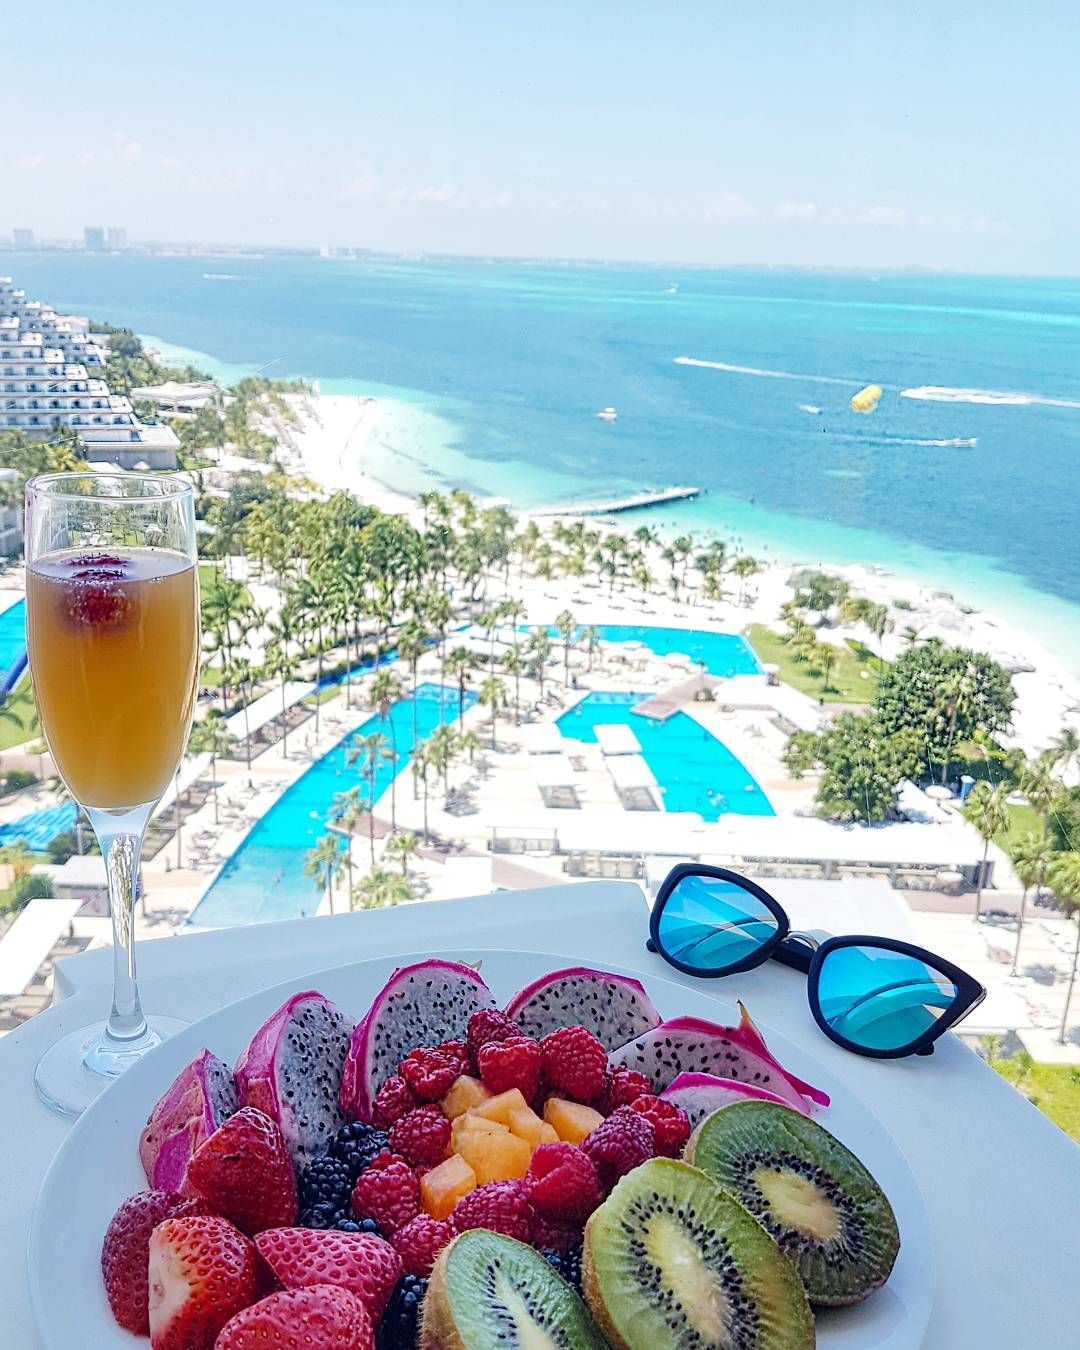 Healthy Breakfast With A View At Riu Palace Peninsula In